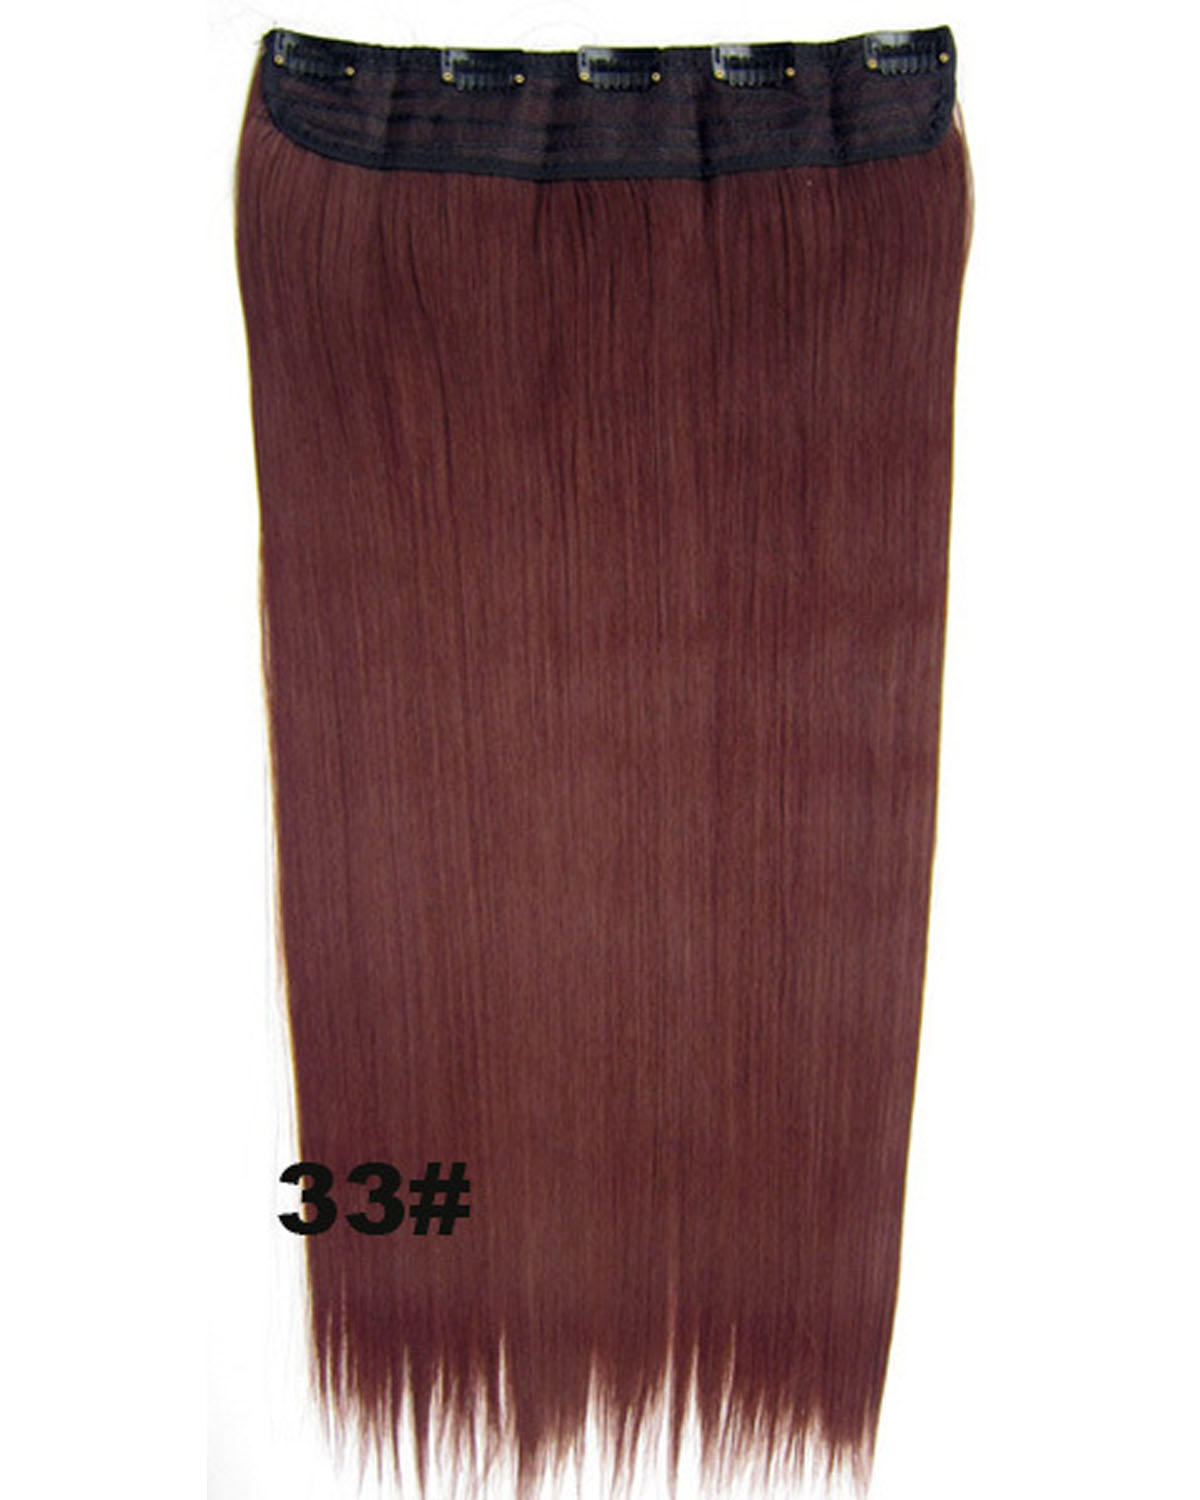 24 inch Natural Straight and Long One Piece 5 Clips Clip in Synthetic Hair Extension  33#